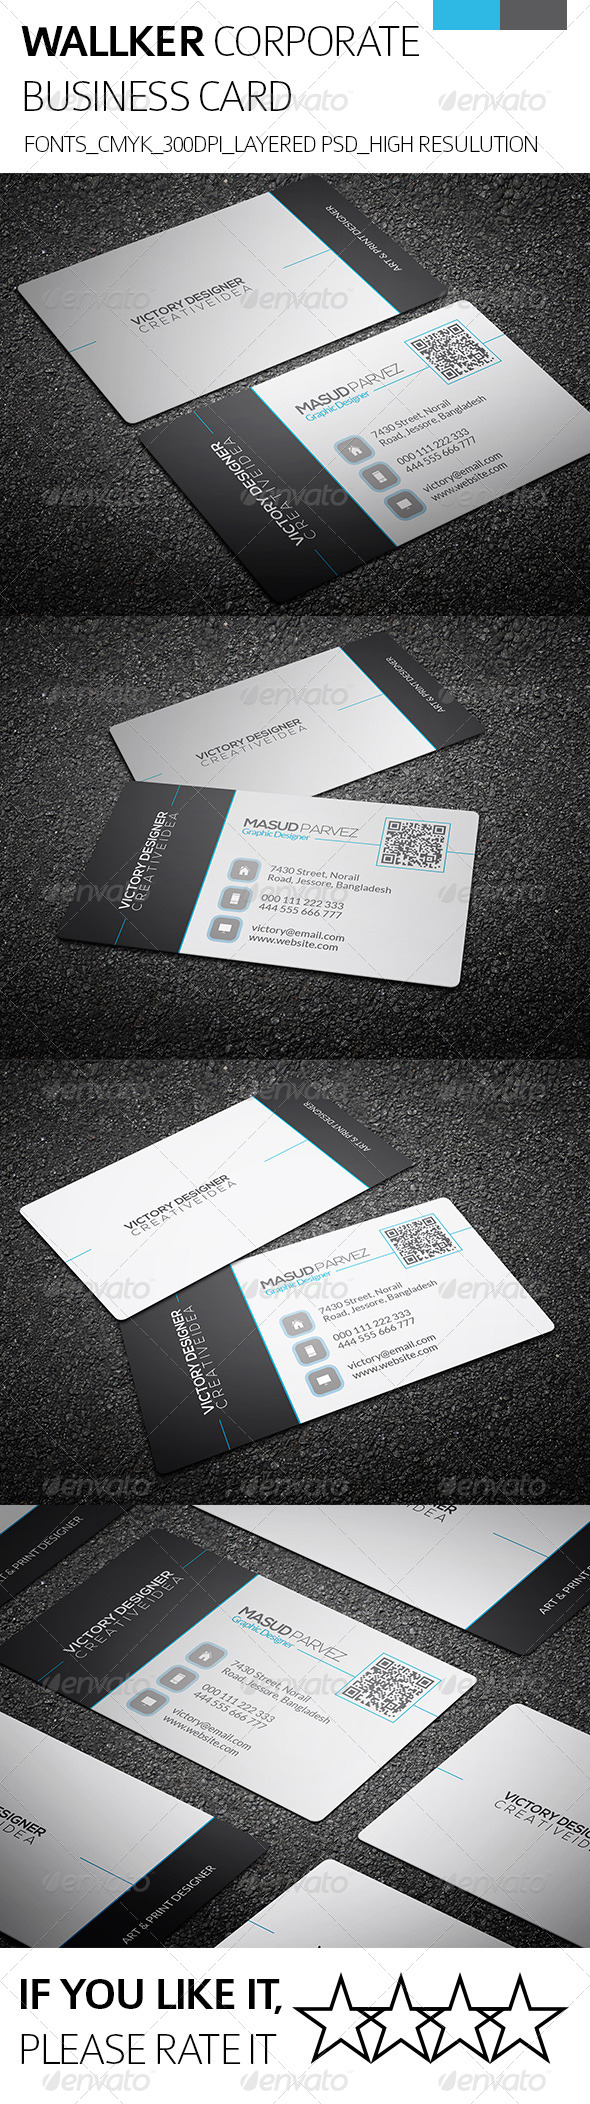 GraphicRiver Wallker & Corporate Business Card 8495702